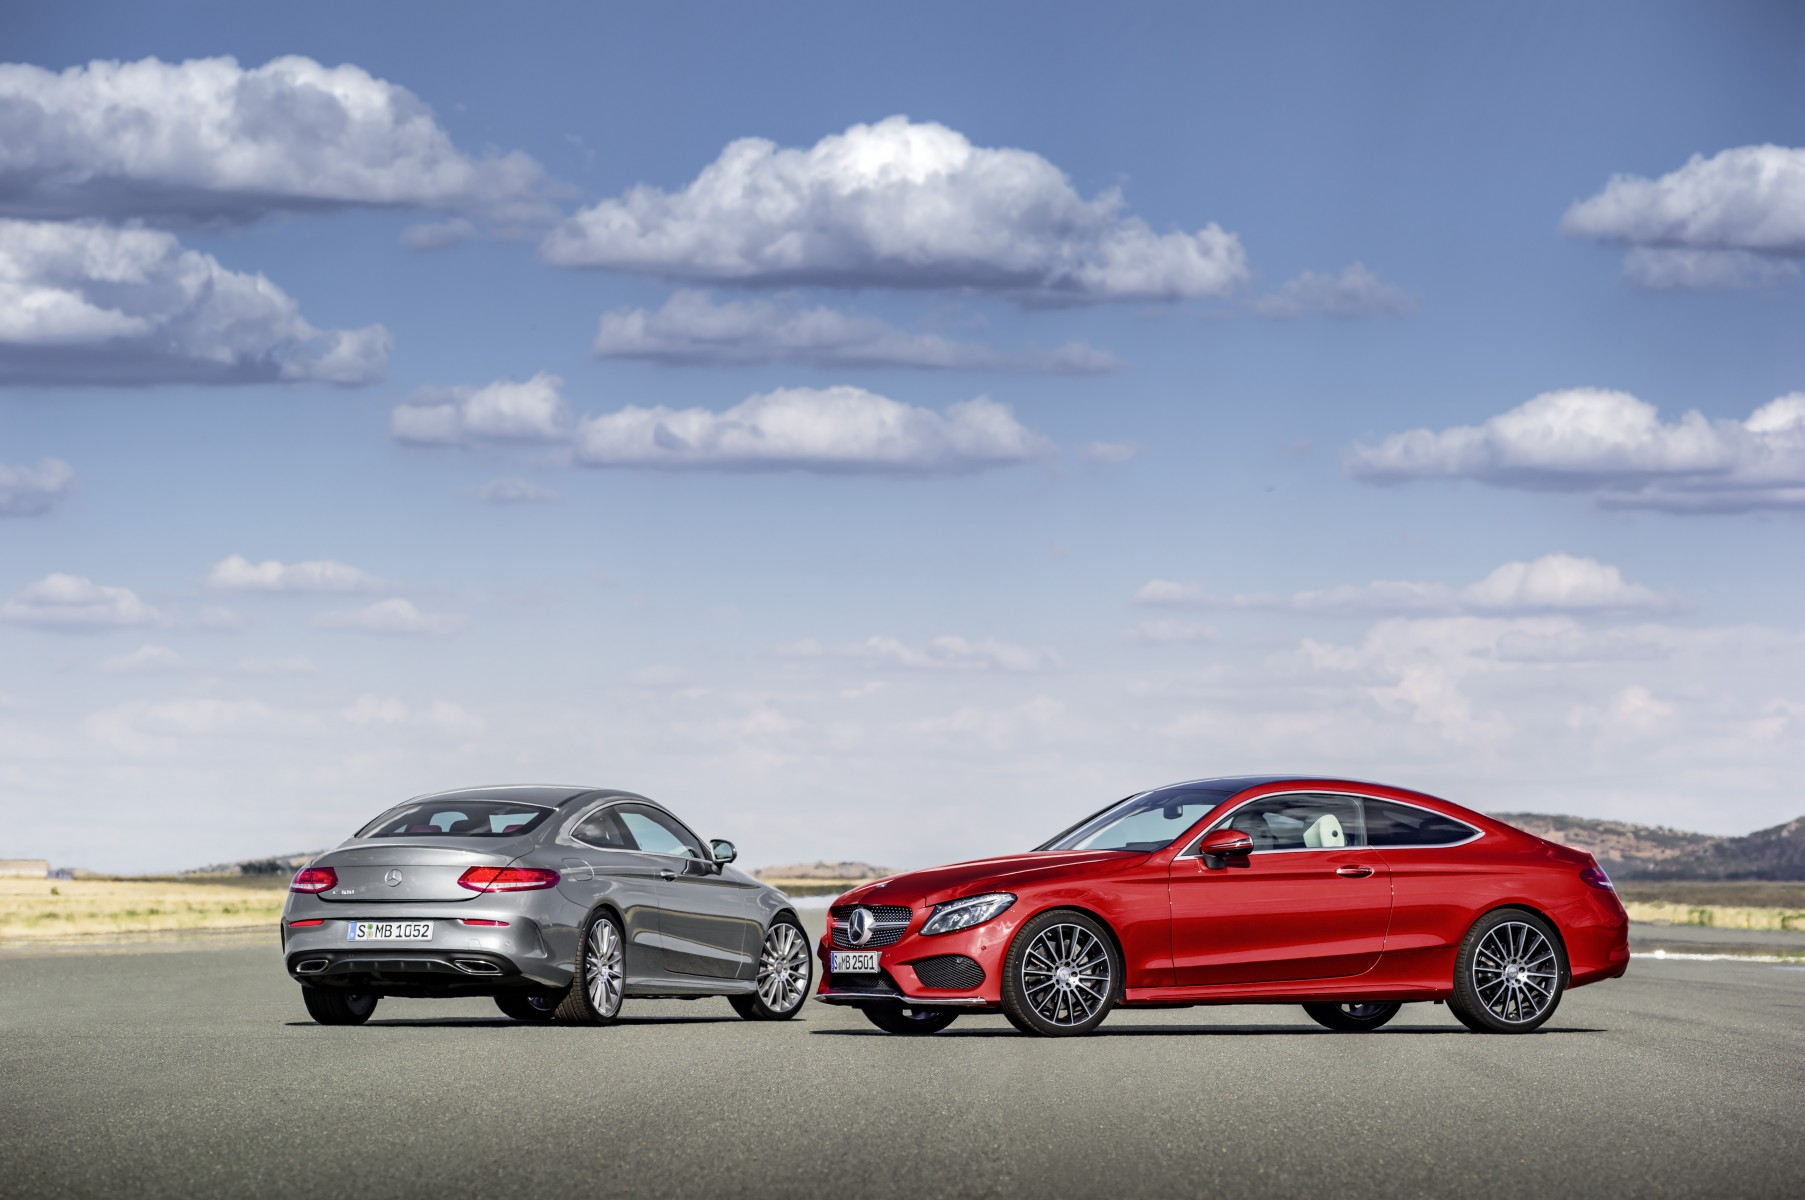 Mercedes-Benz C-Class Coupé C 250 d 4MATIC, hyacinth red, leather porcellain/black; Mercedes-Benz C-Class Coupé C 300, selenit grey, leather cranberry red